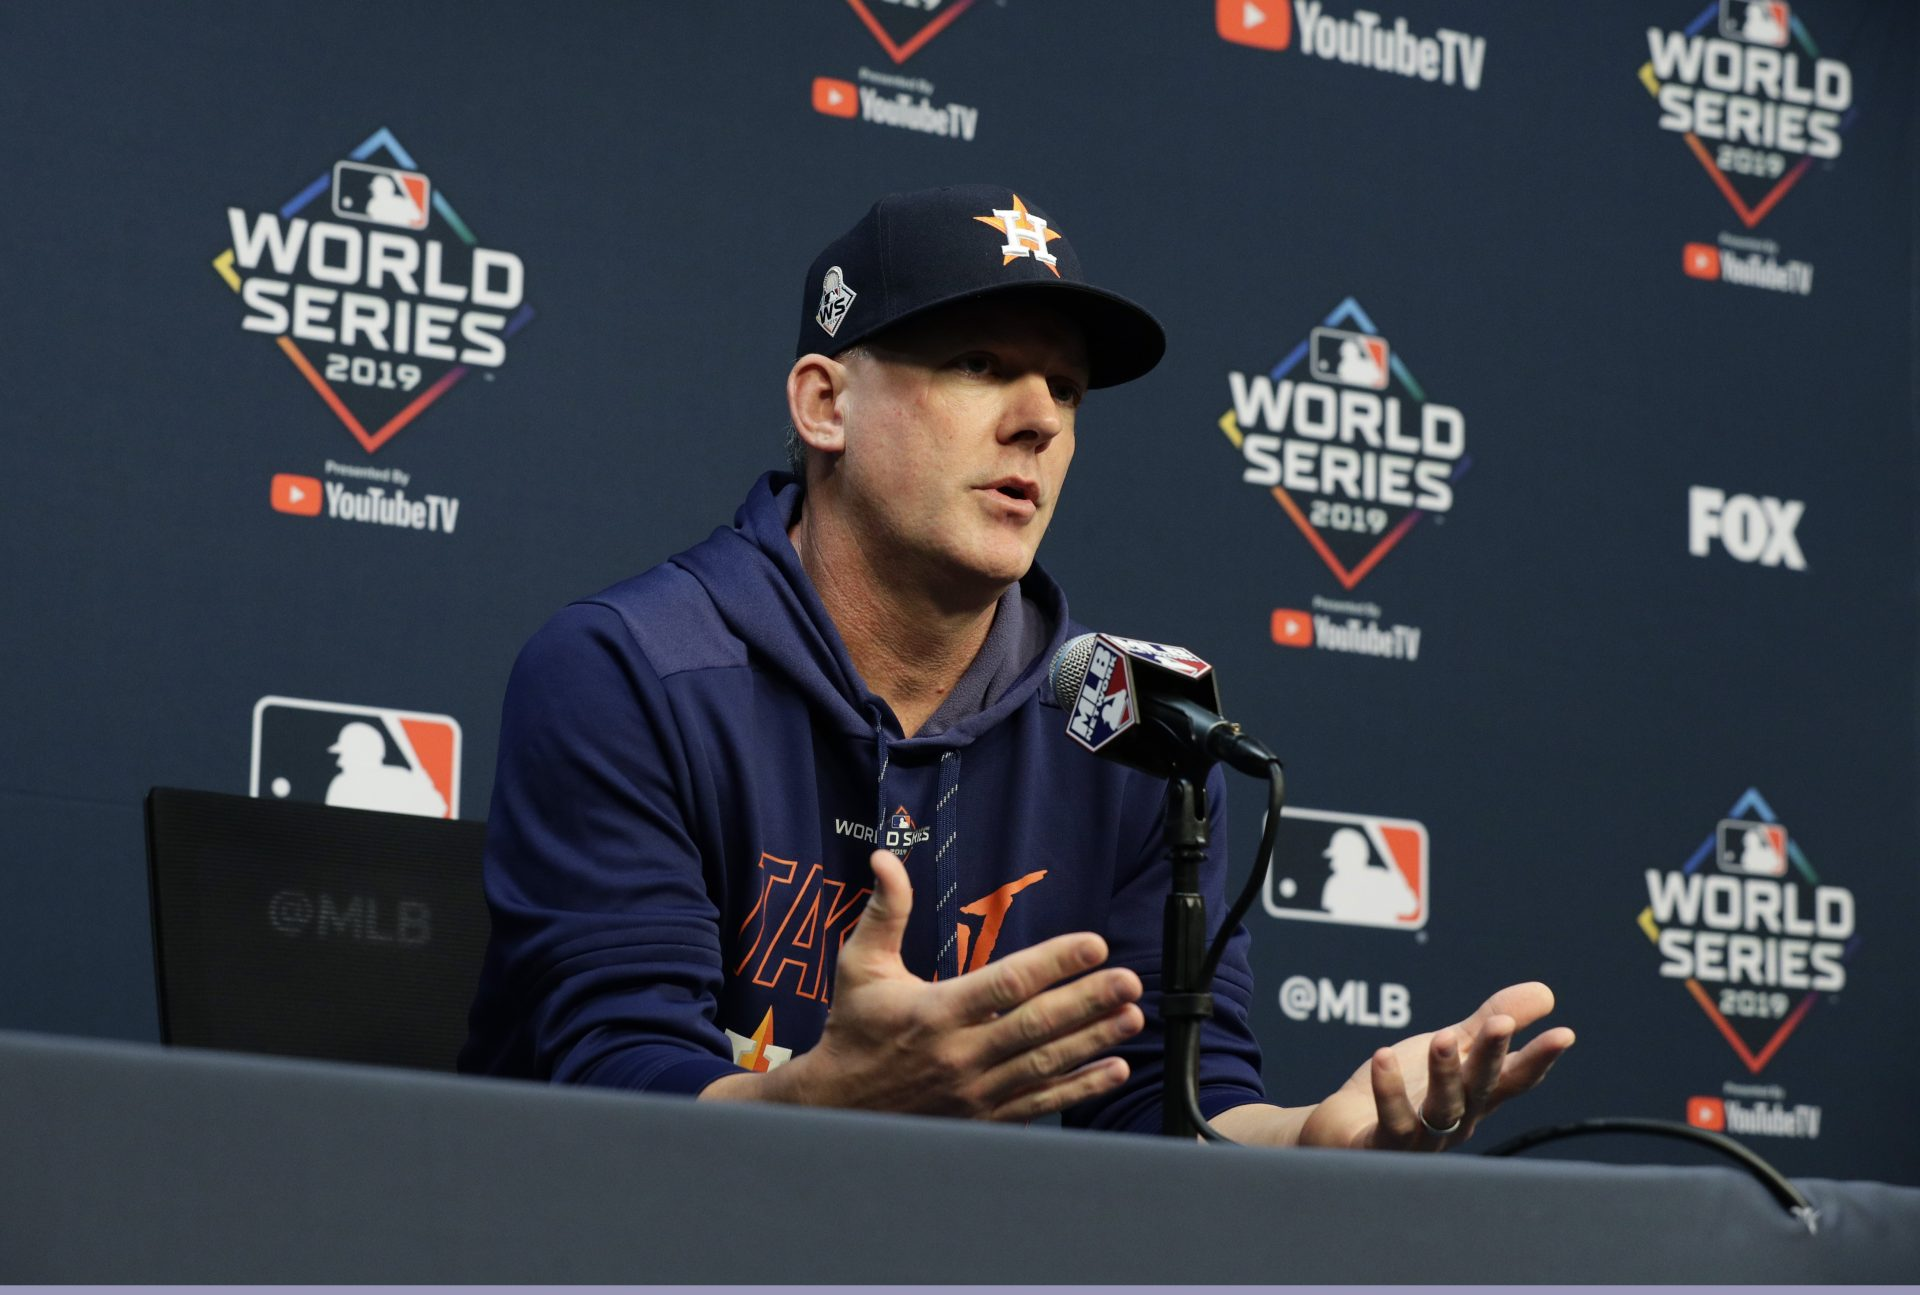 FILE - In this Oct. 28, 2019, file photo, Houston Astros manager AJ Hinch talks to the media during a news conference for baseball's World Series, in Houston. Houston manager AJ Hinch and general manager Jeff Luhnow were suspended for the entire season Monday, Jan. 13, 2020, and the team was fined $5 million for sign-stealing by the team in 2017 and 2018 season. Commissioner Rob Manfred announced the discipline and strongly hinted that current Boston manager Alex Cora — the Astros bench coach in 2017 — will face punishment later. Manfred said Cora developed the sign-stealing system used by the Astros.